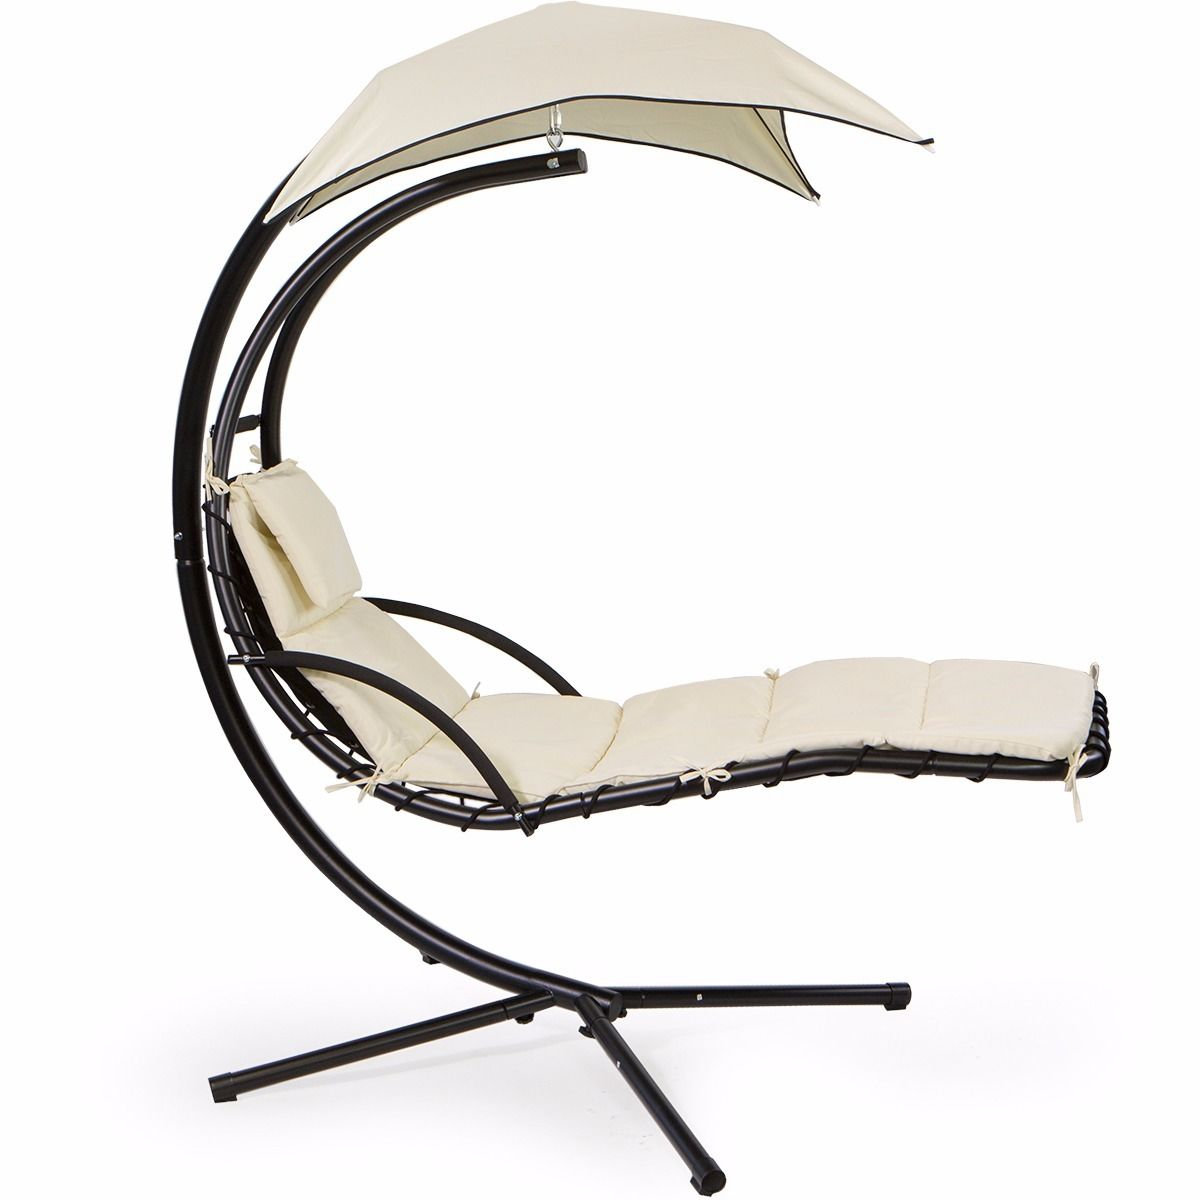 Barton Chair Barton Patio Hanging Helicopter Dream Lounger Chair Stand